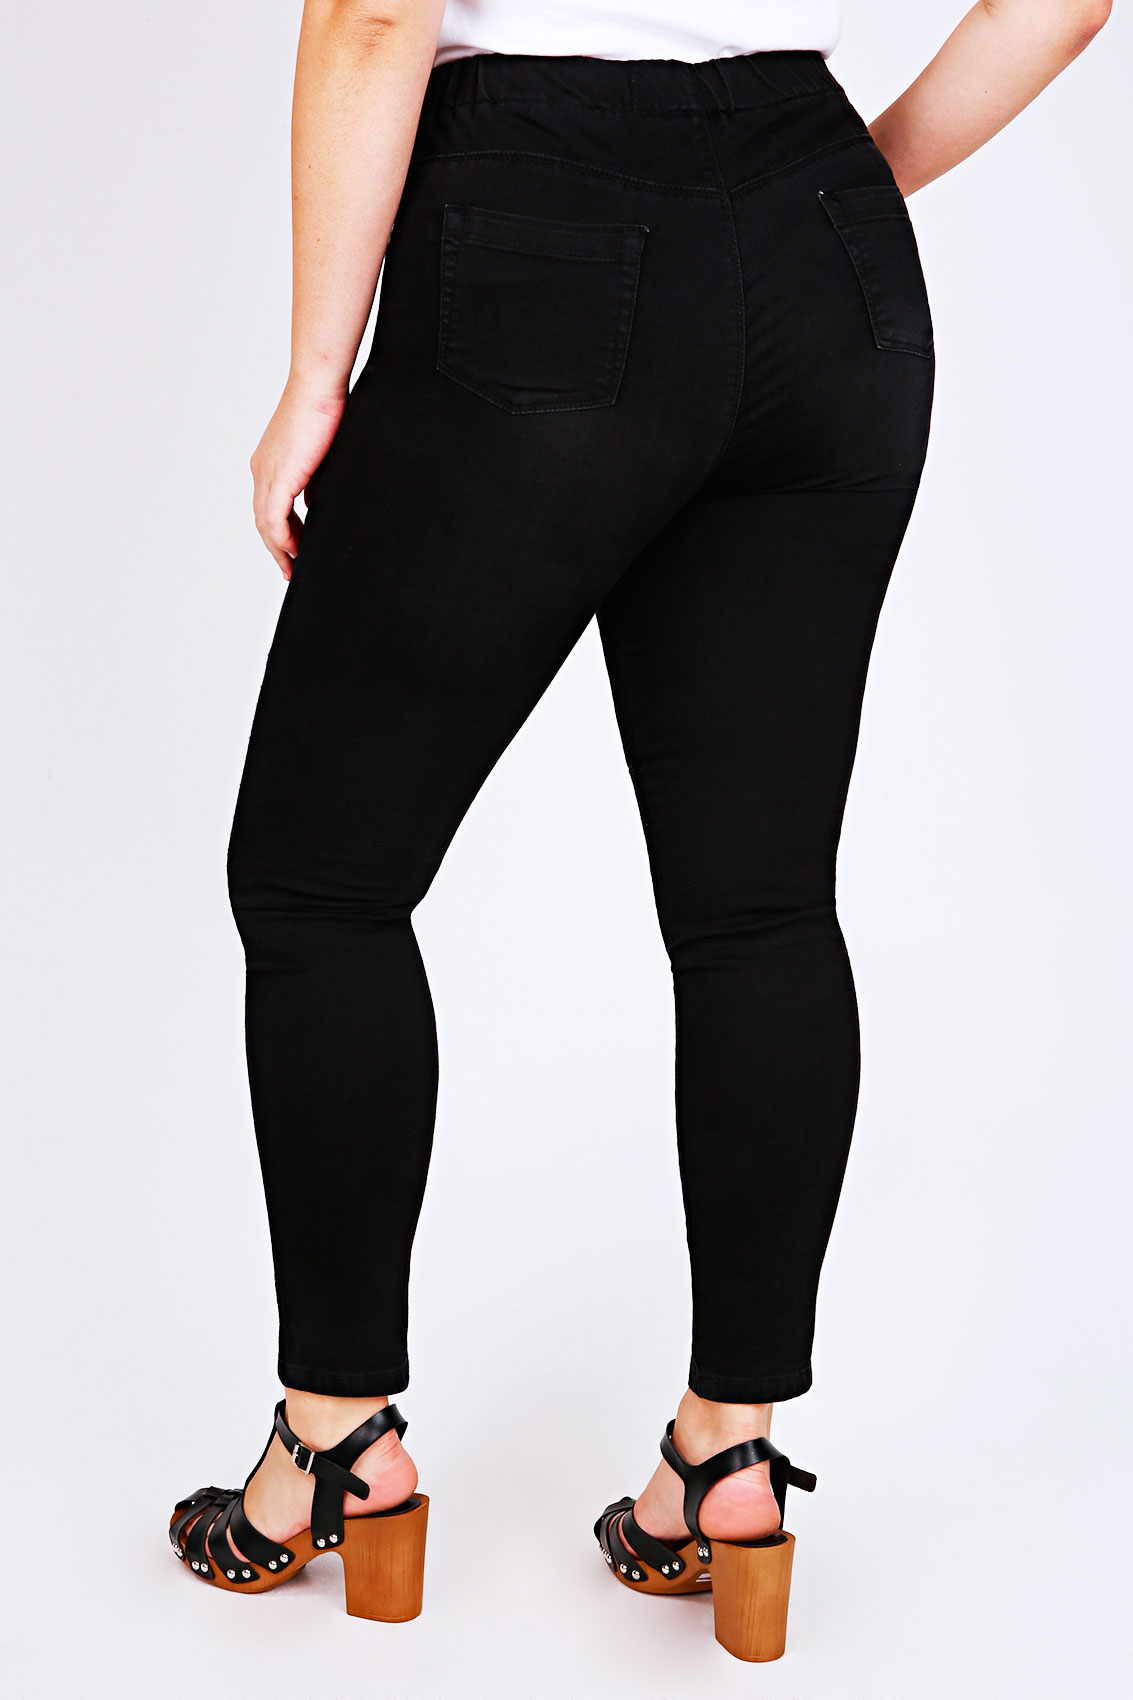 Plus collection Black denim Skinny fit Belt loops Five pockets Button and zip fly fastening Plus Size Guide. Plus collection Black denim Skinny fit Belt loops Five pockets Button and zip fly fastening Plus Size Guide. Search River Island. Women. Women. New in; All New Arrivals Plus black skinny Molly jeggings Plus black skinny Molly.